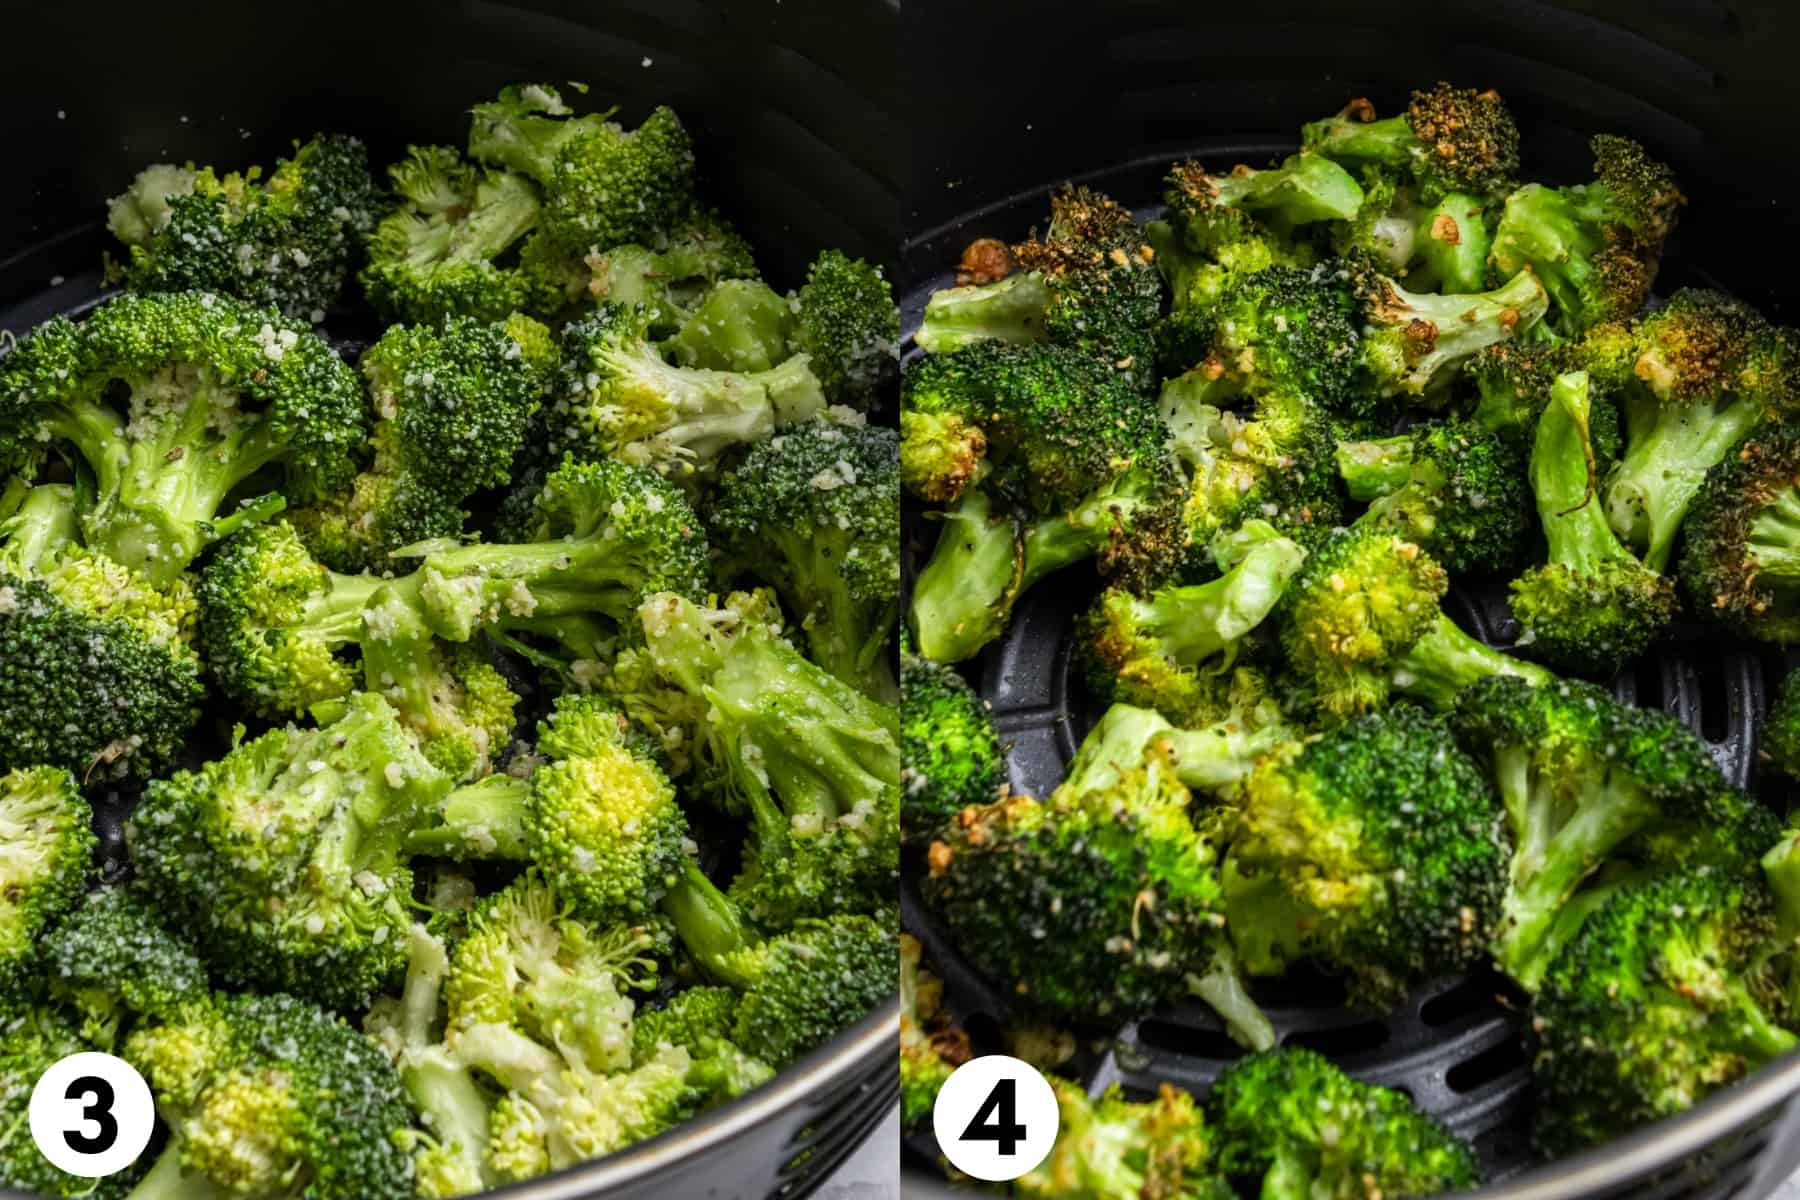 Broccoli in air fryer before cooking and after cooking.